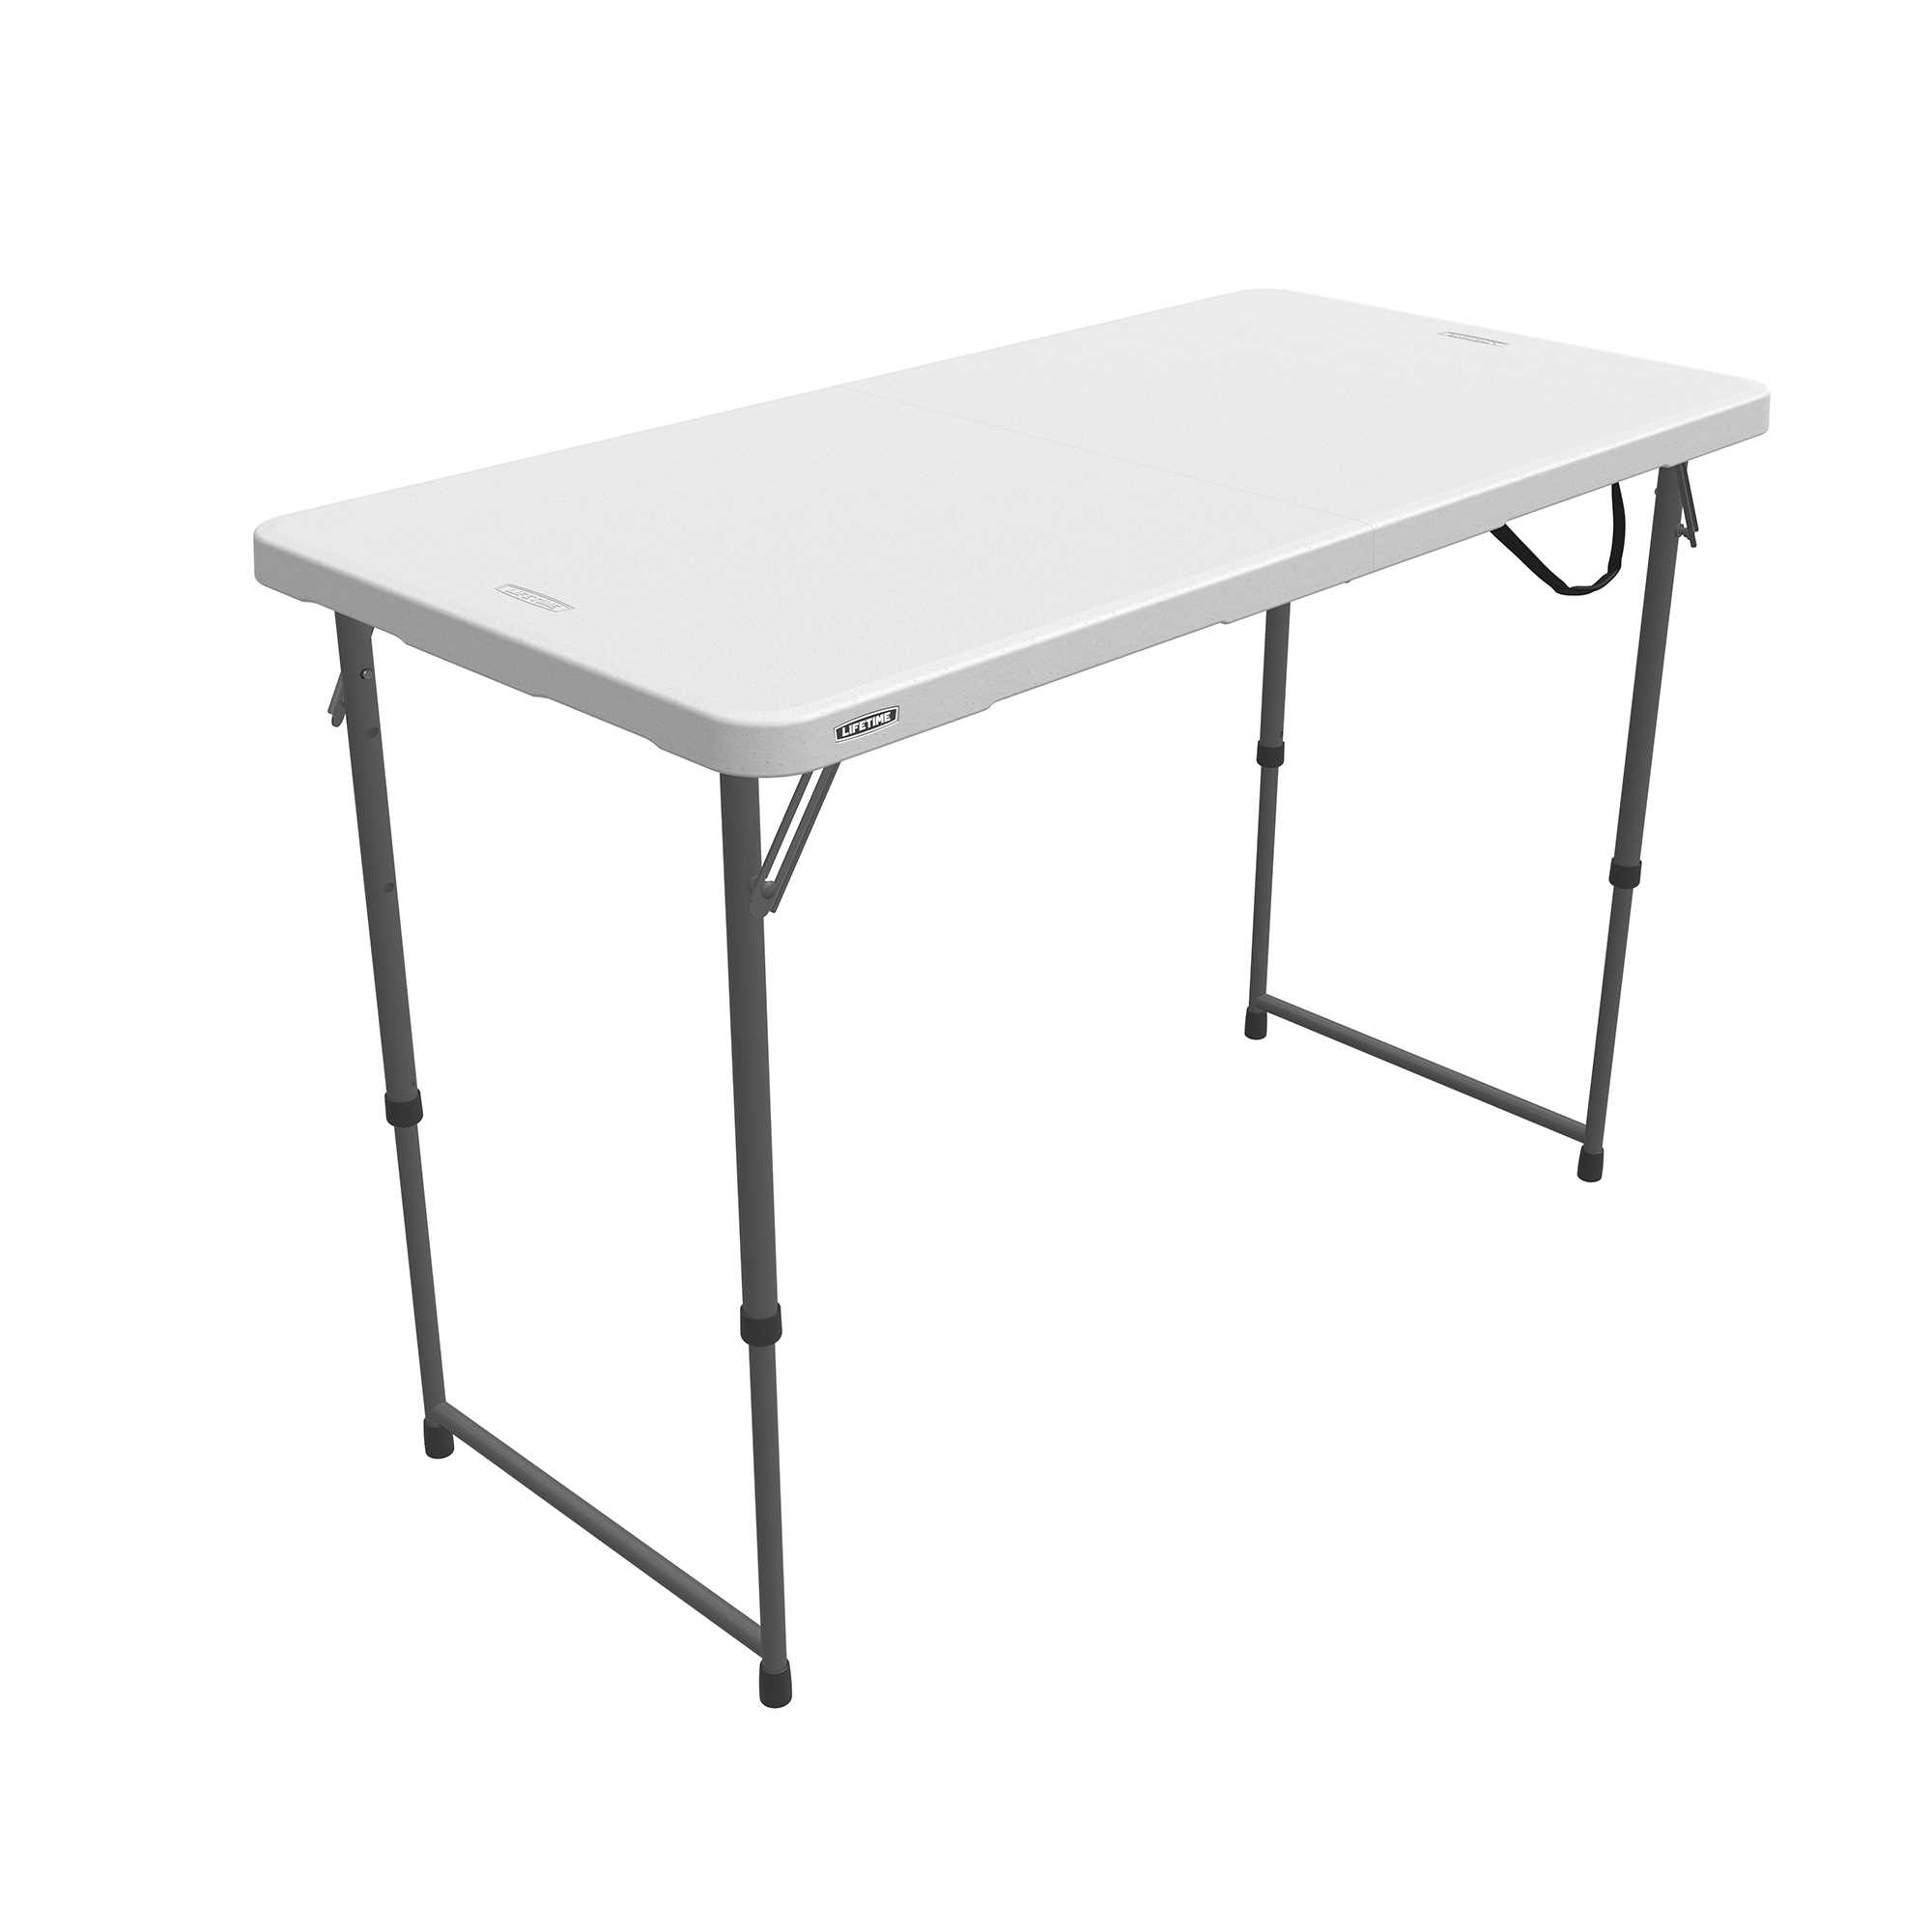 Table pliable en 2 (valise) ajustable rectangulaire (blanc) 122cm / 4 personnes